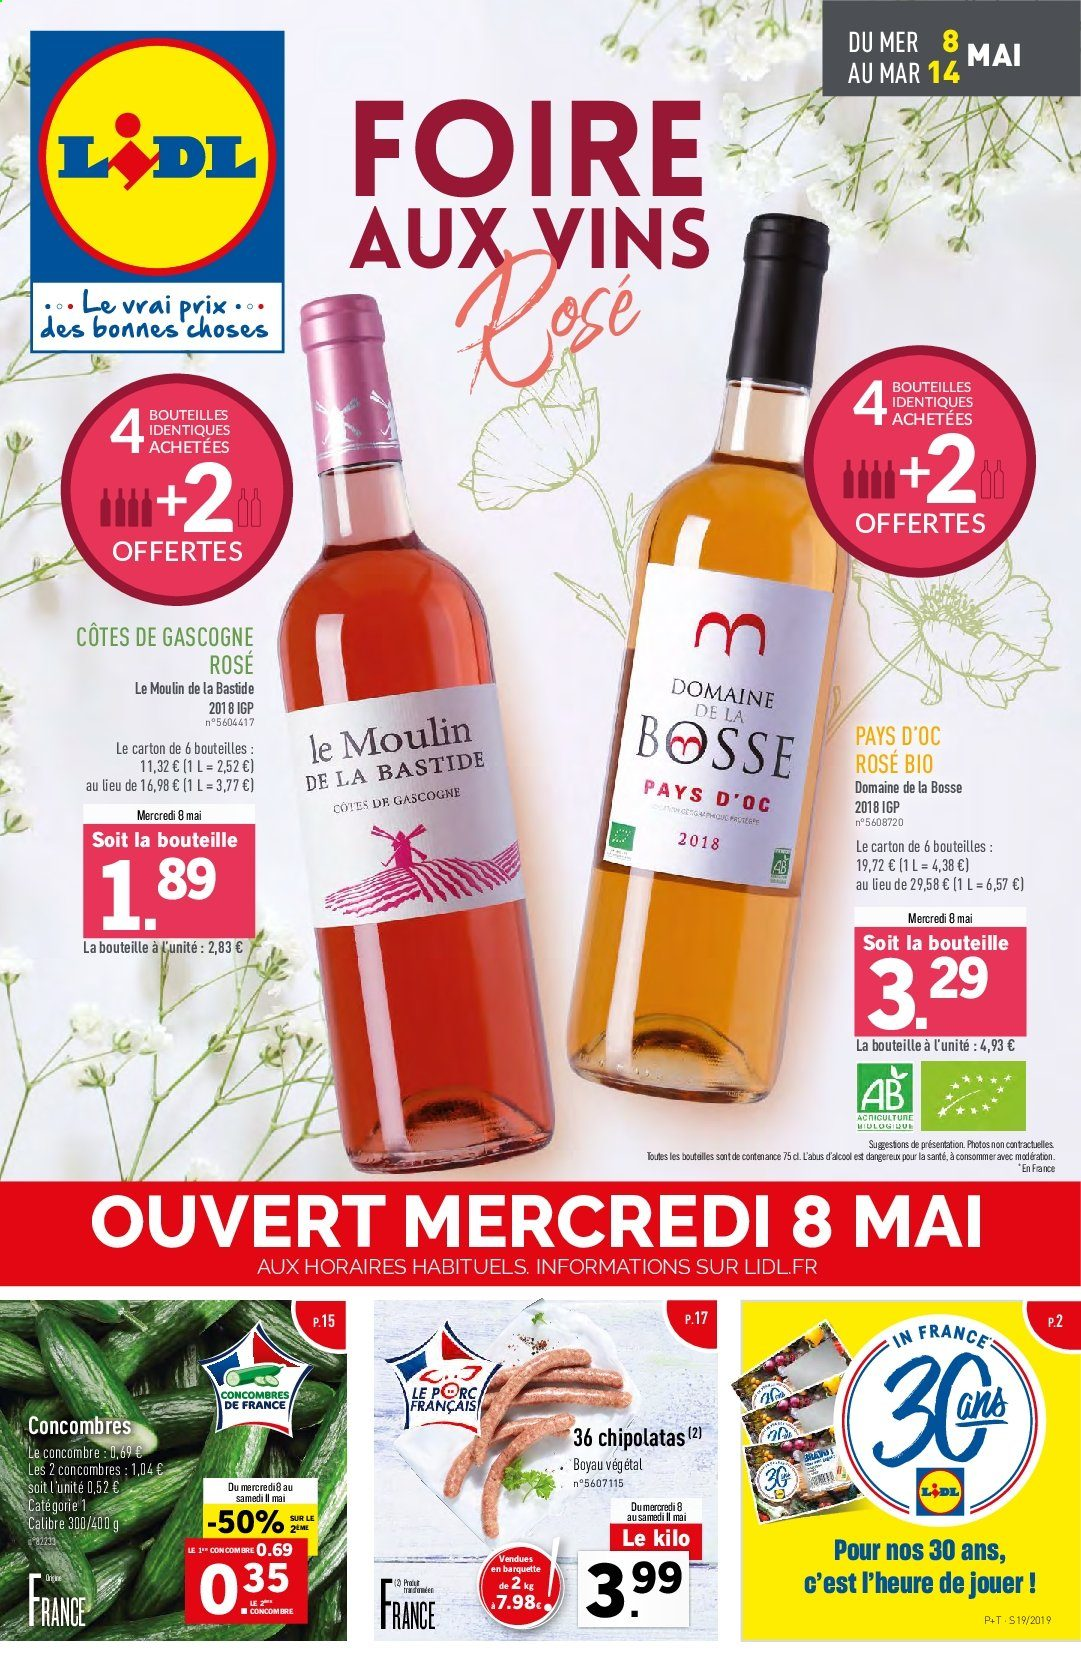 Catalogue Lidl - 08.05.2019 - 14.05.2019. Page 1.